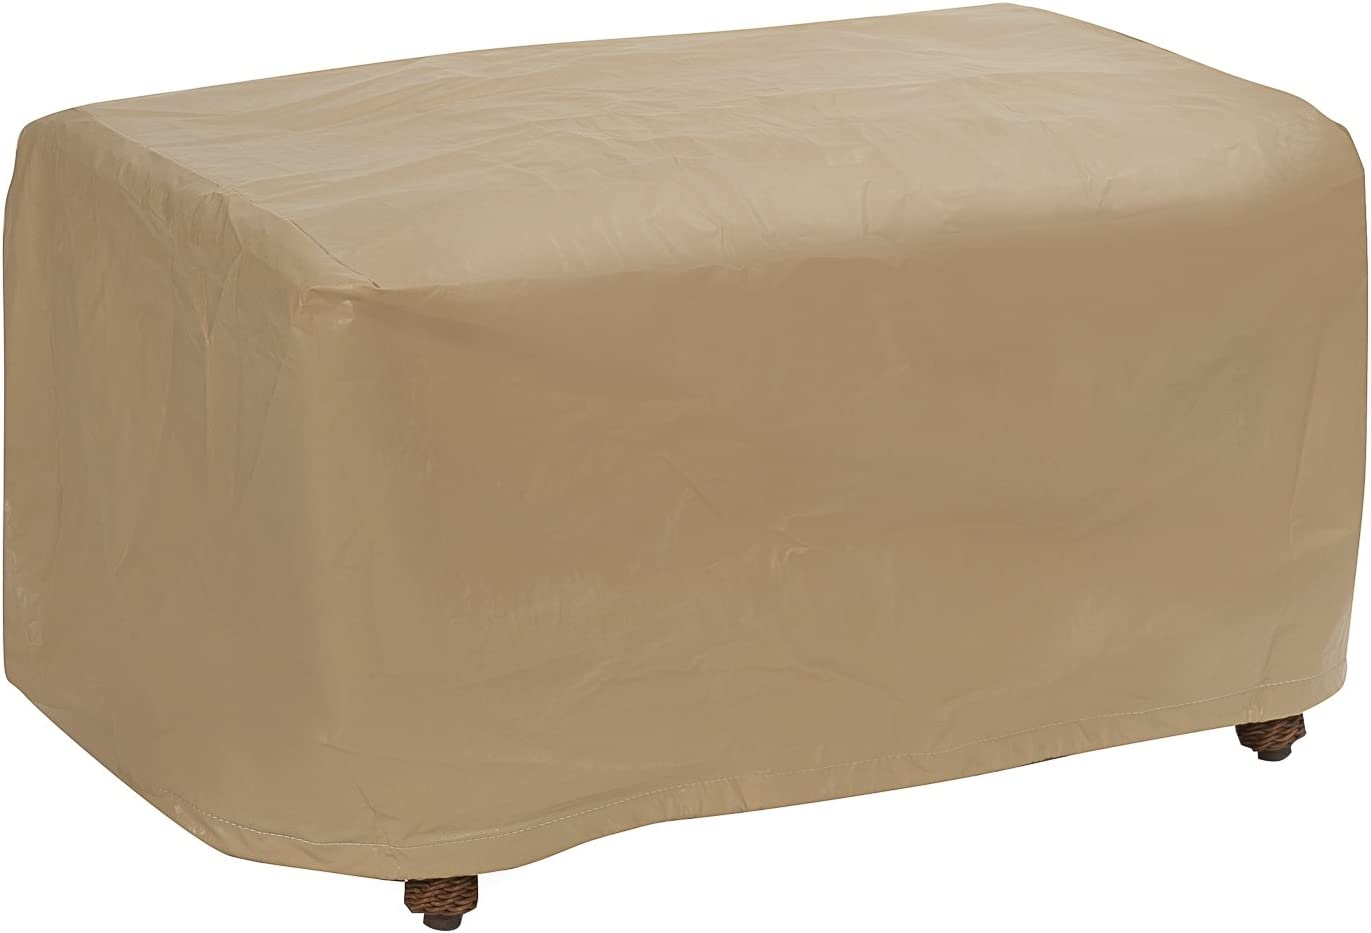 Protective Covers Weatherproof Ottoman Cover, Large, Tan - 1116-TN